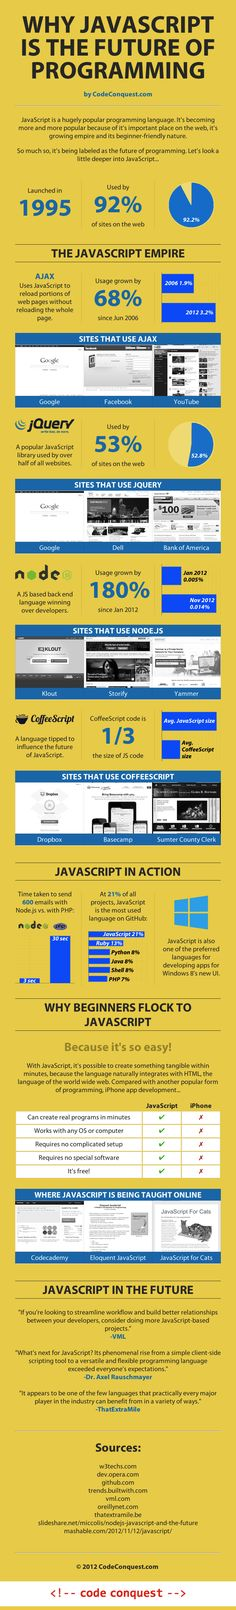 Why JavaScript is the Future of Programming #javascript #jazzy-javascript